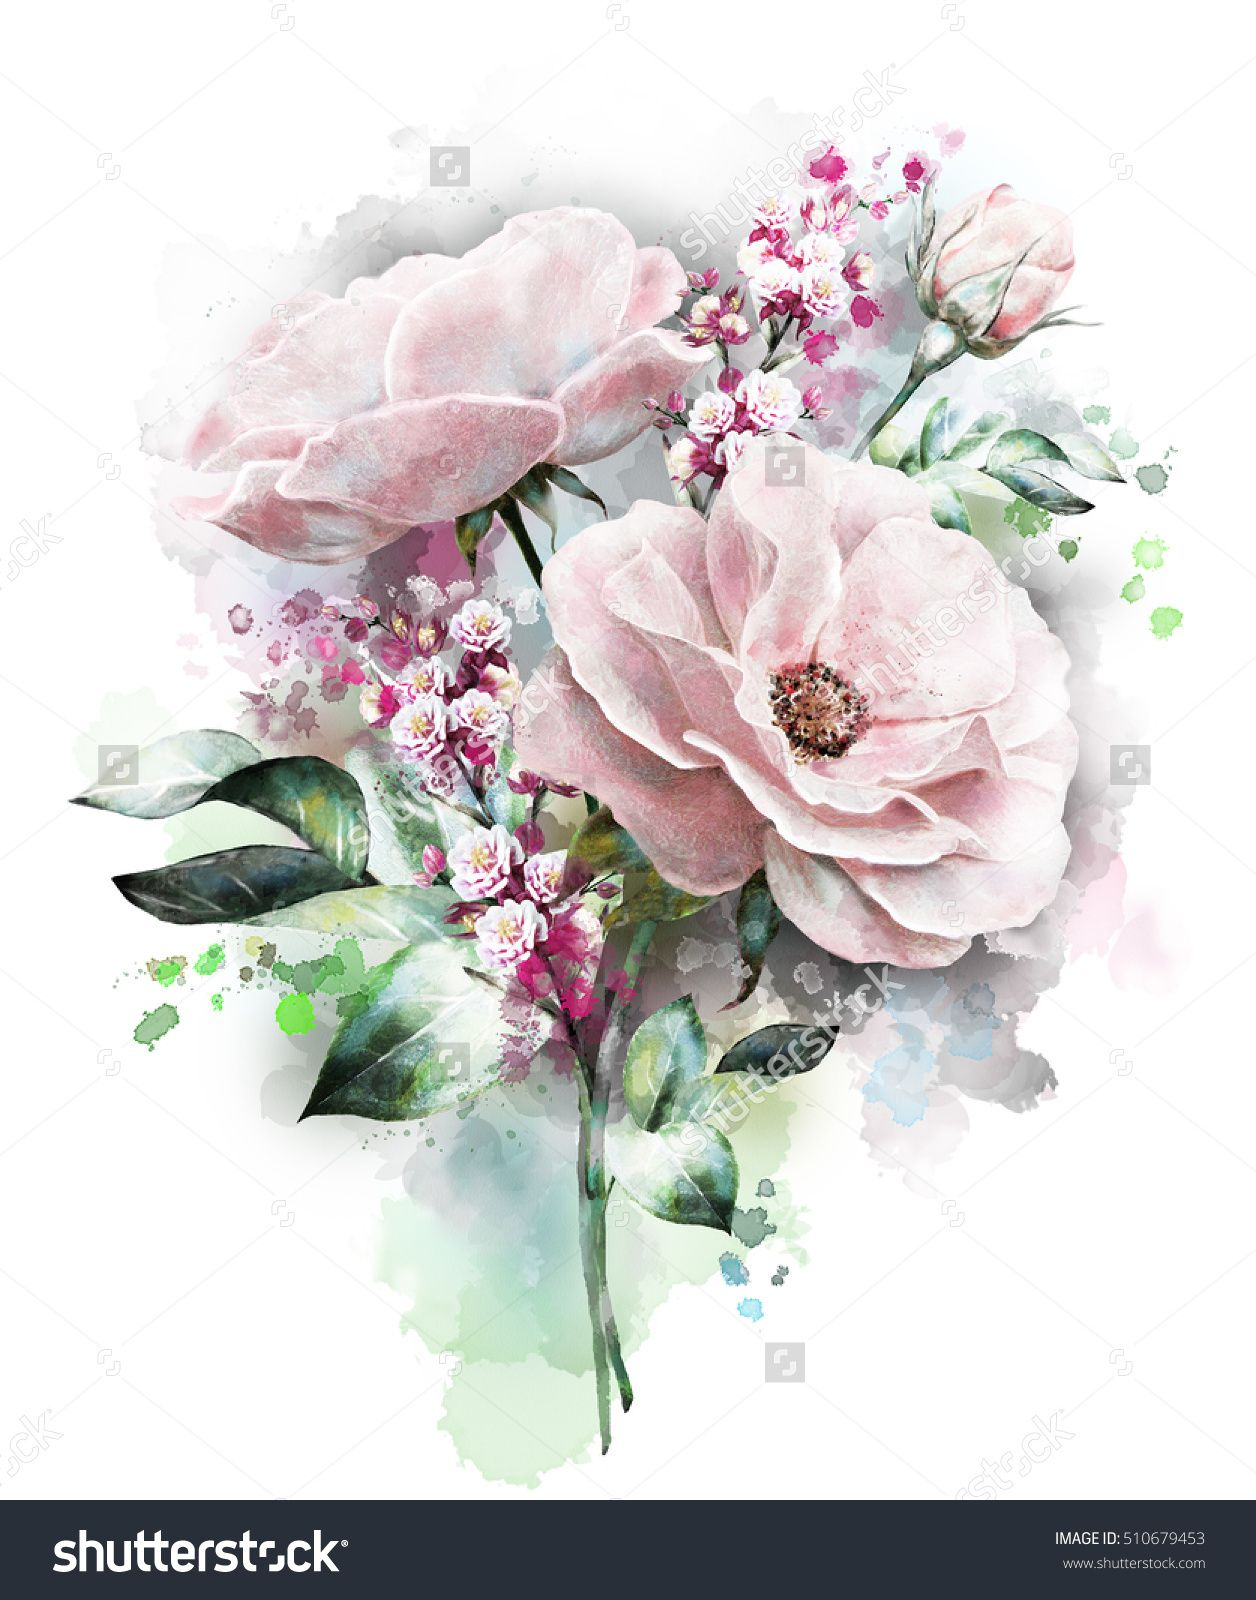 Watercolor Flowers Floral Illustration, Flower In Pastel Colors, Pink Rose